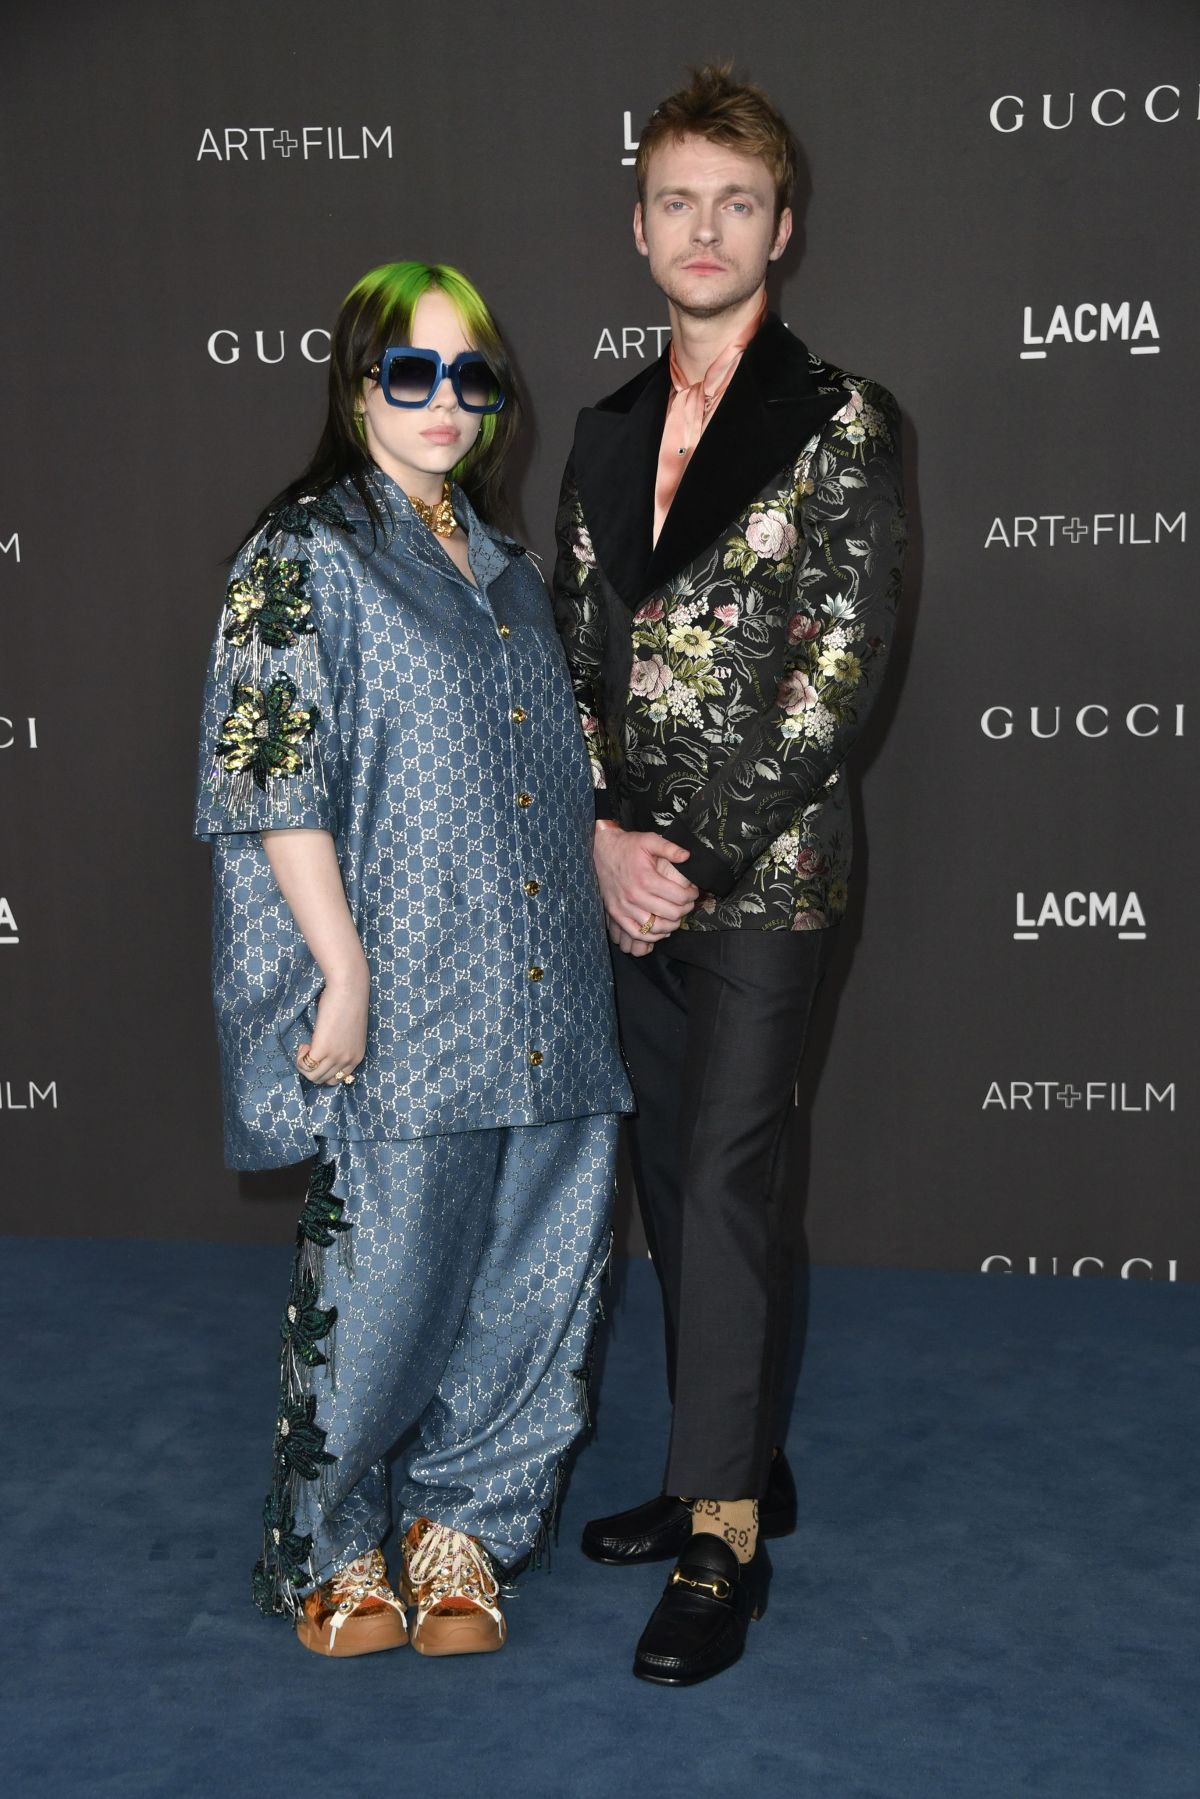 Who Is Billie Eilish's Brother Finneas O'Connell?